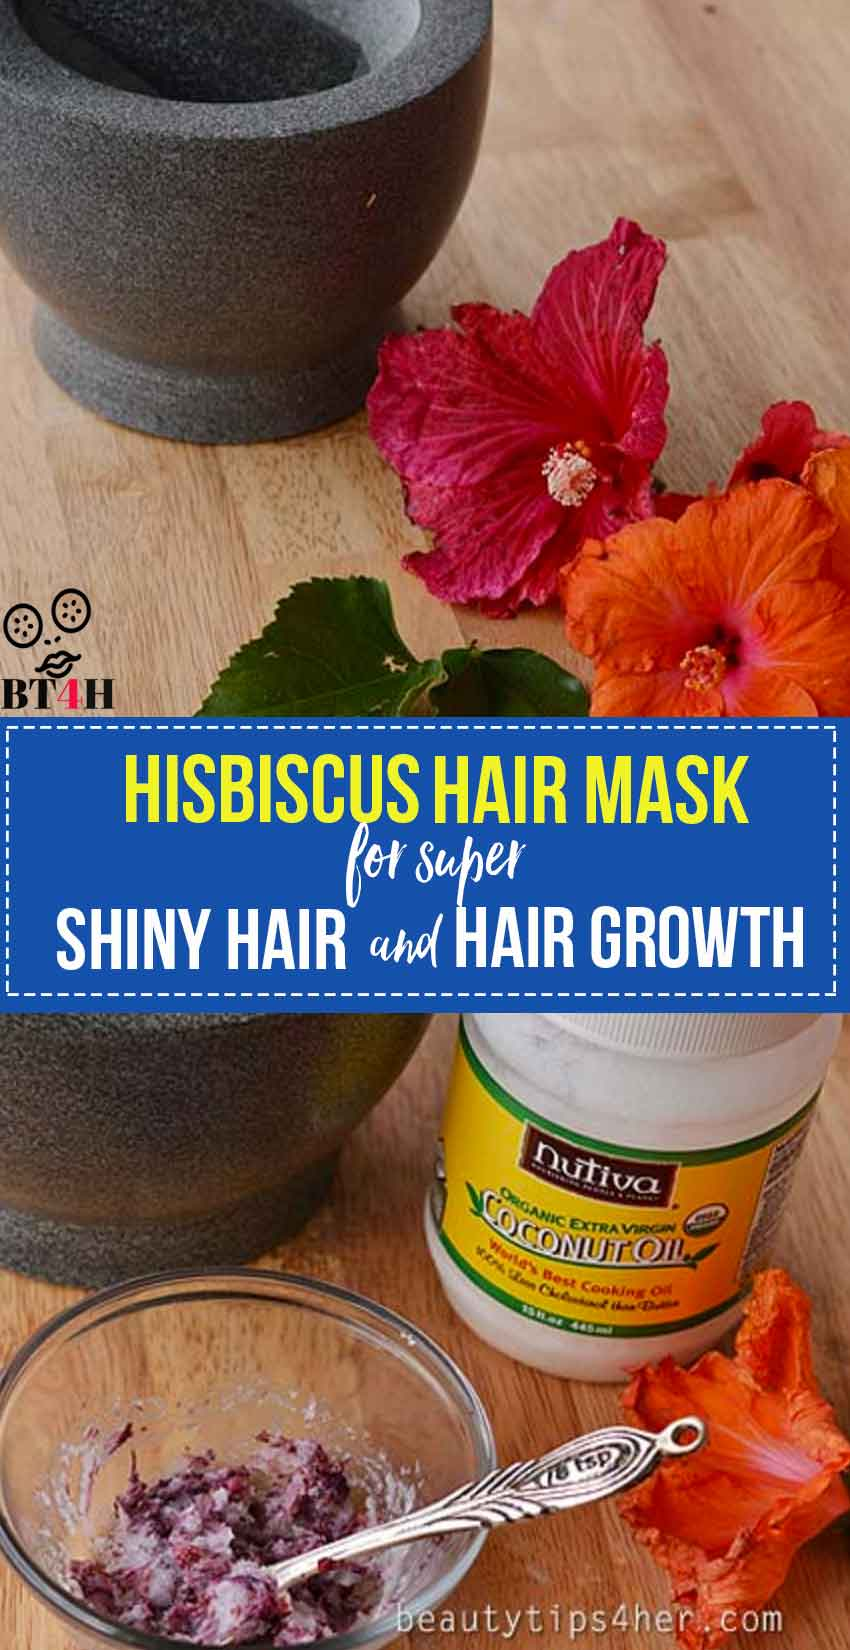 hair mask for shiny hair